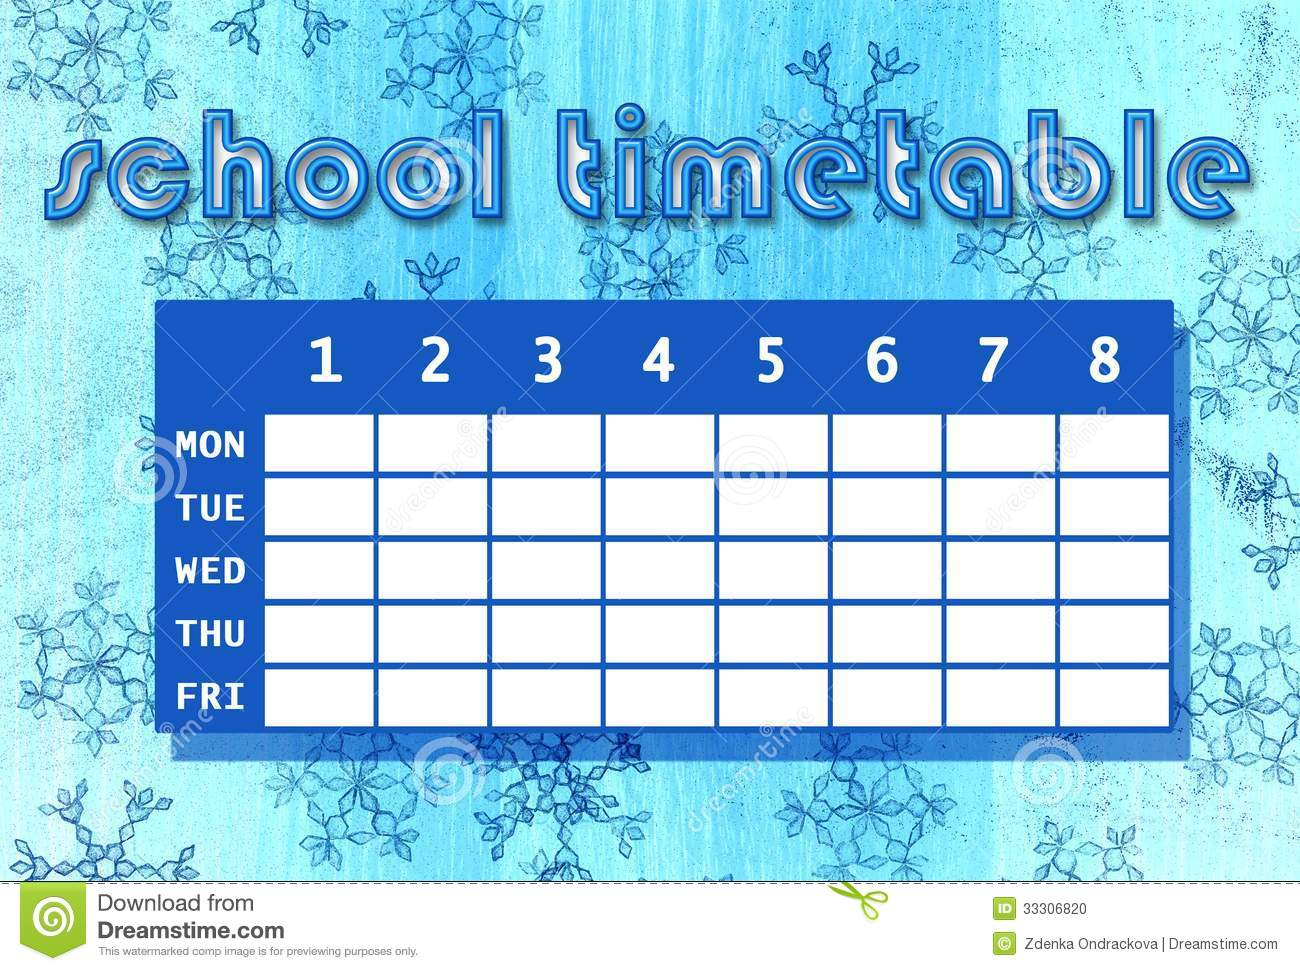 how to make a school time table manually